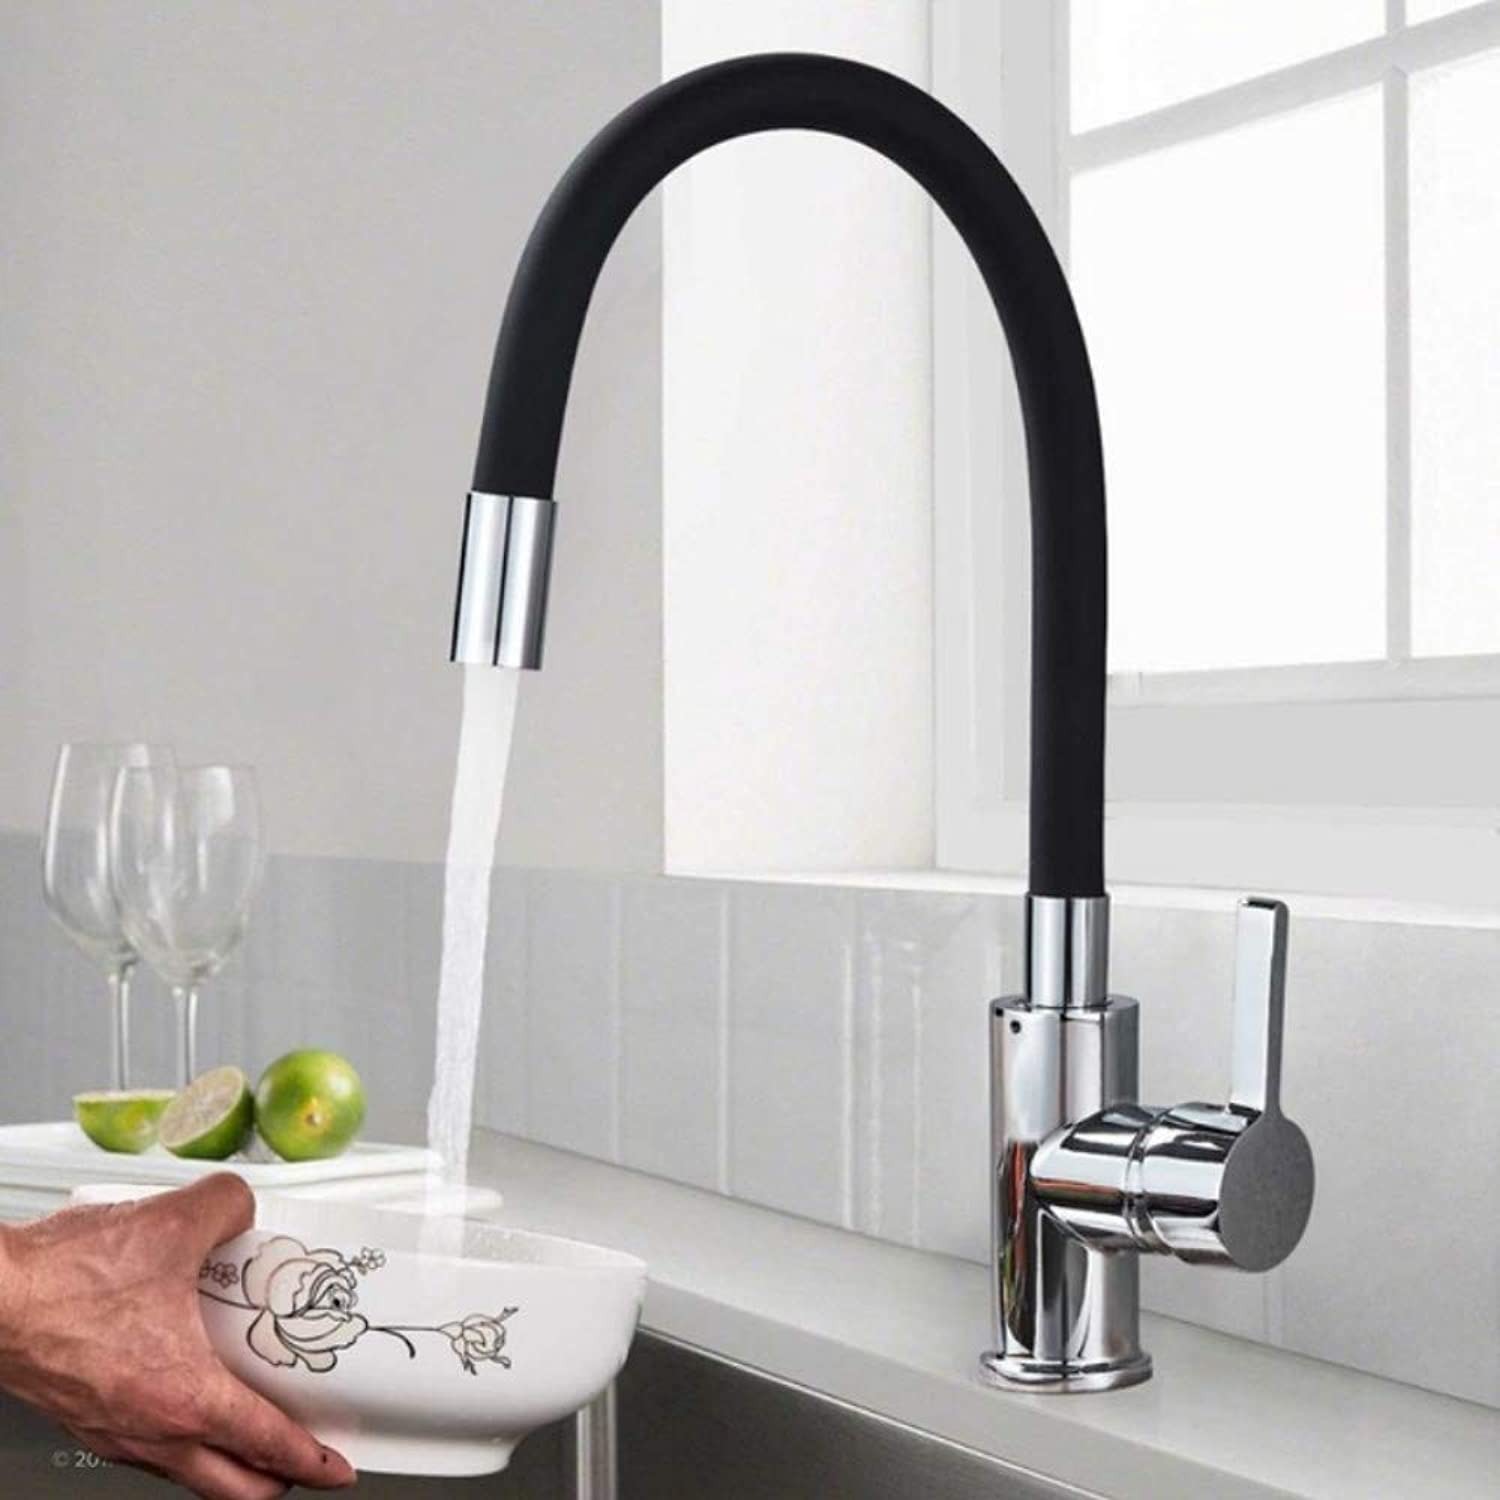 Mzdpp Pipe Flexible Neck Kitchen Sink Faucet Chrome Universal Pipe Hot Cold Kitchen Mixer Tap Deck Mounted Bathroom Kitchen Tap,Black FT-556